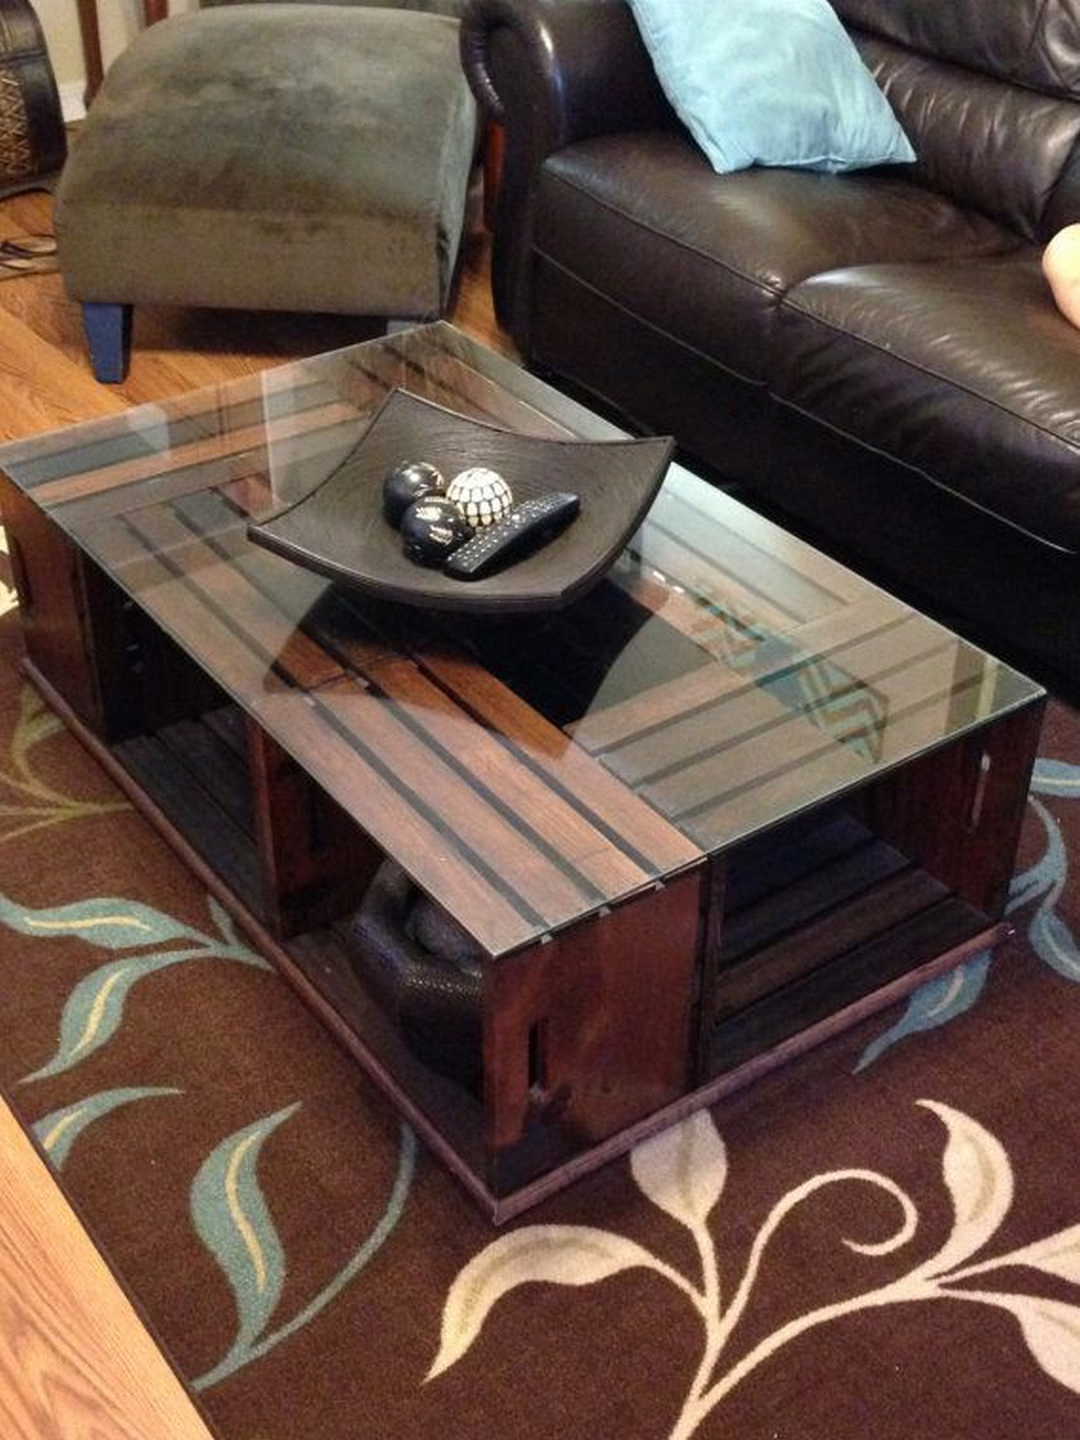 Coffee Table Styling As Modern Urban Decoration Cool Coffee Tables intended for sizing 1080 X 1440